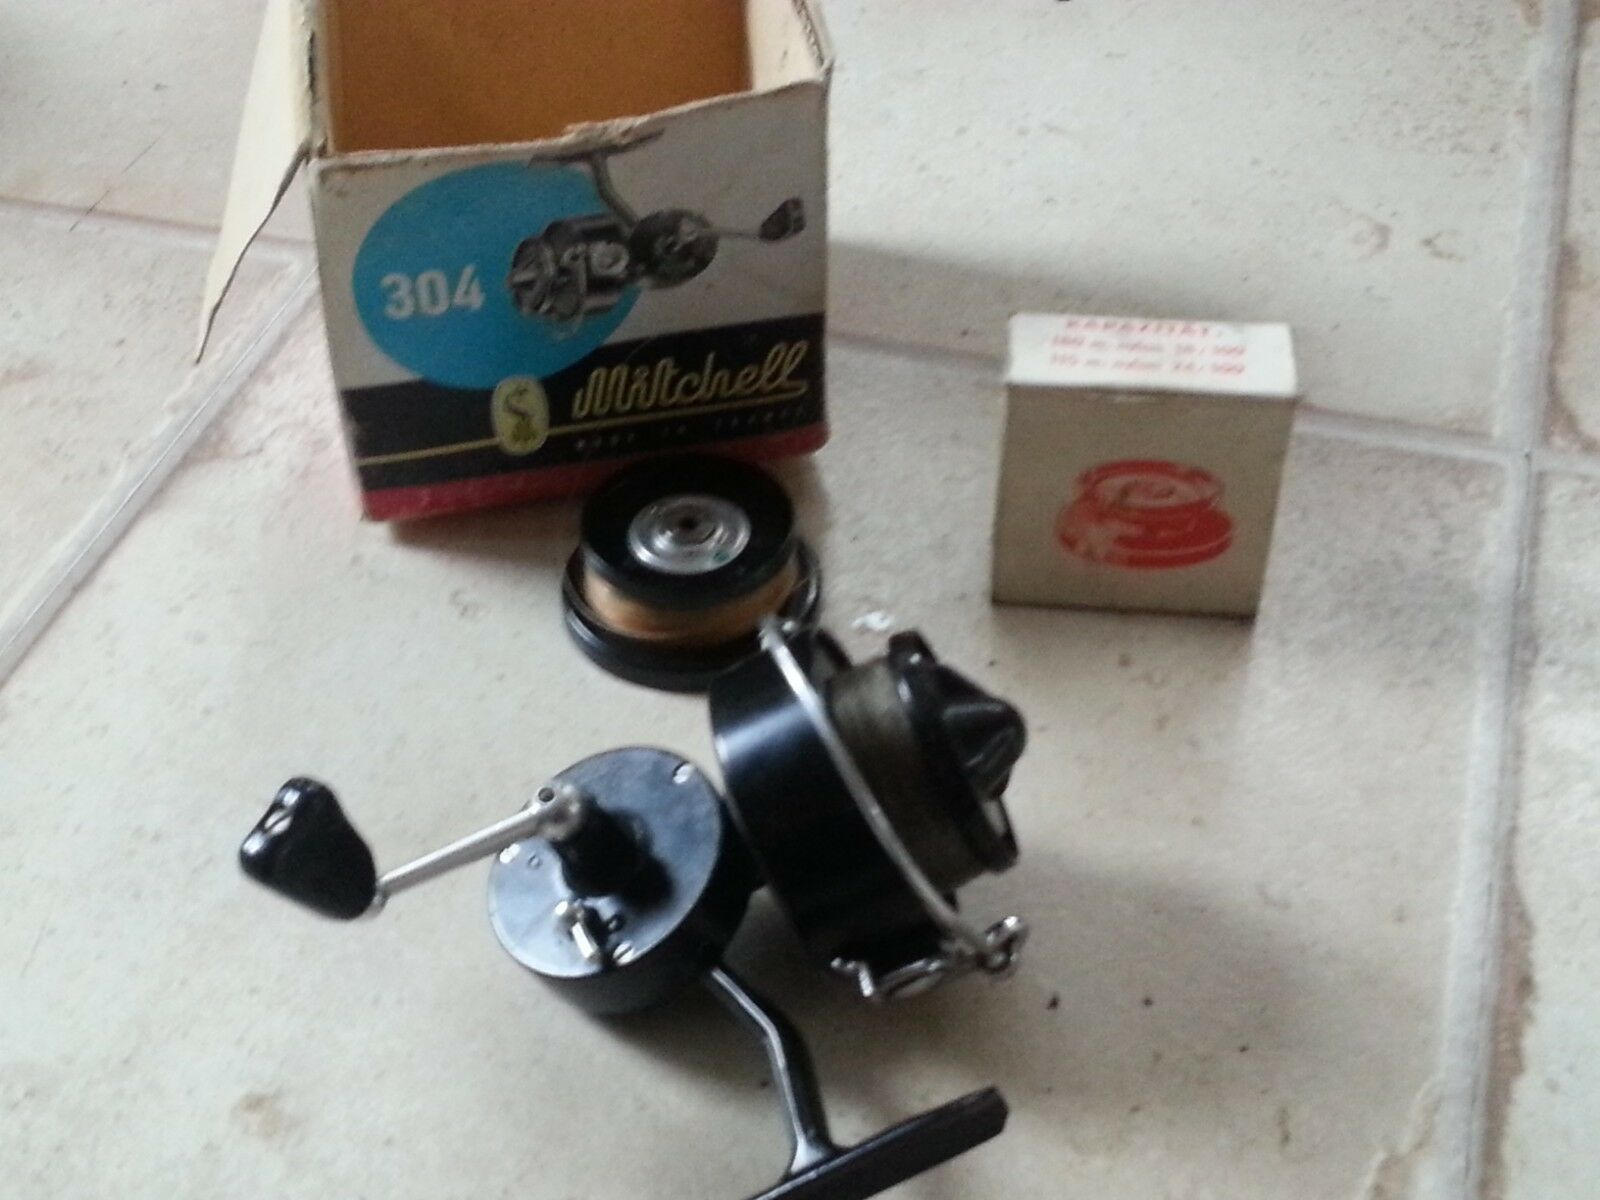 Vintage Mitclell 304 fishing reel and spear spool